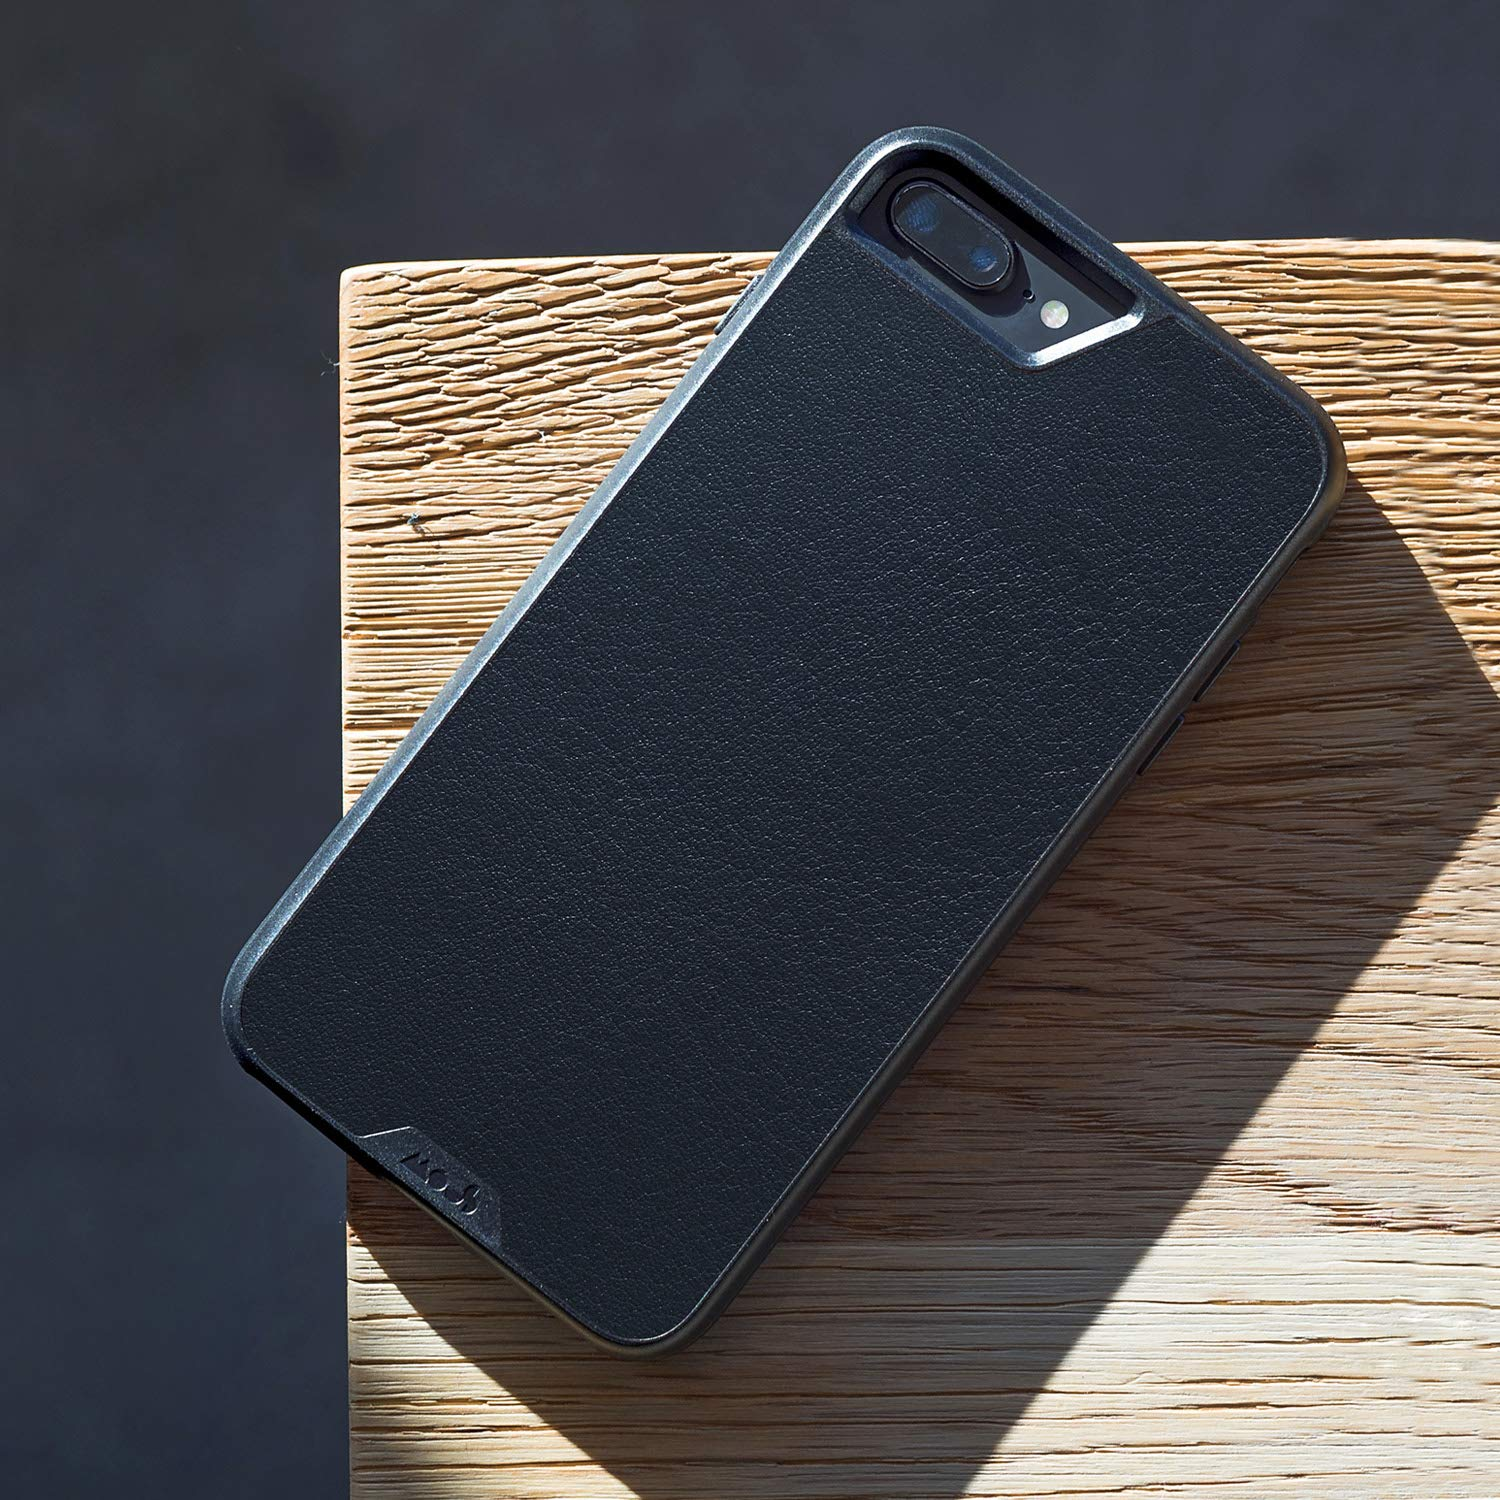 Mous Protective iPhone Case 8+/7+/6s+/6+ Plus - Black Leather - Limitless 2.0 by MOUS (Image #5)